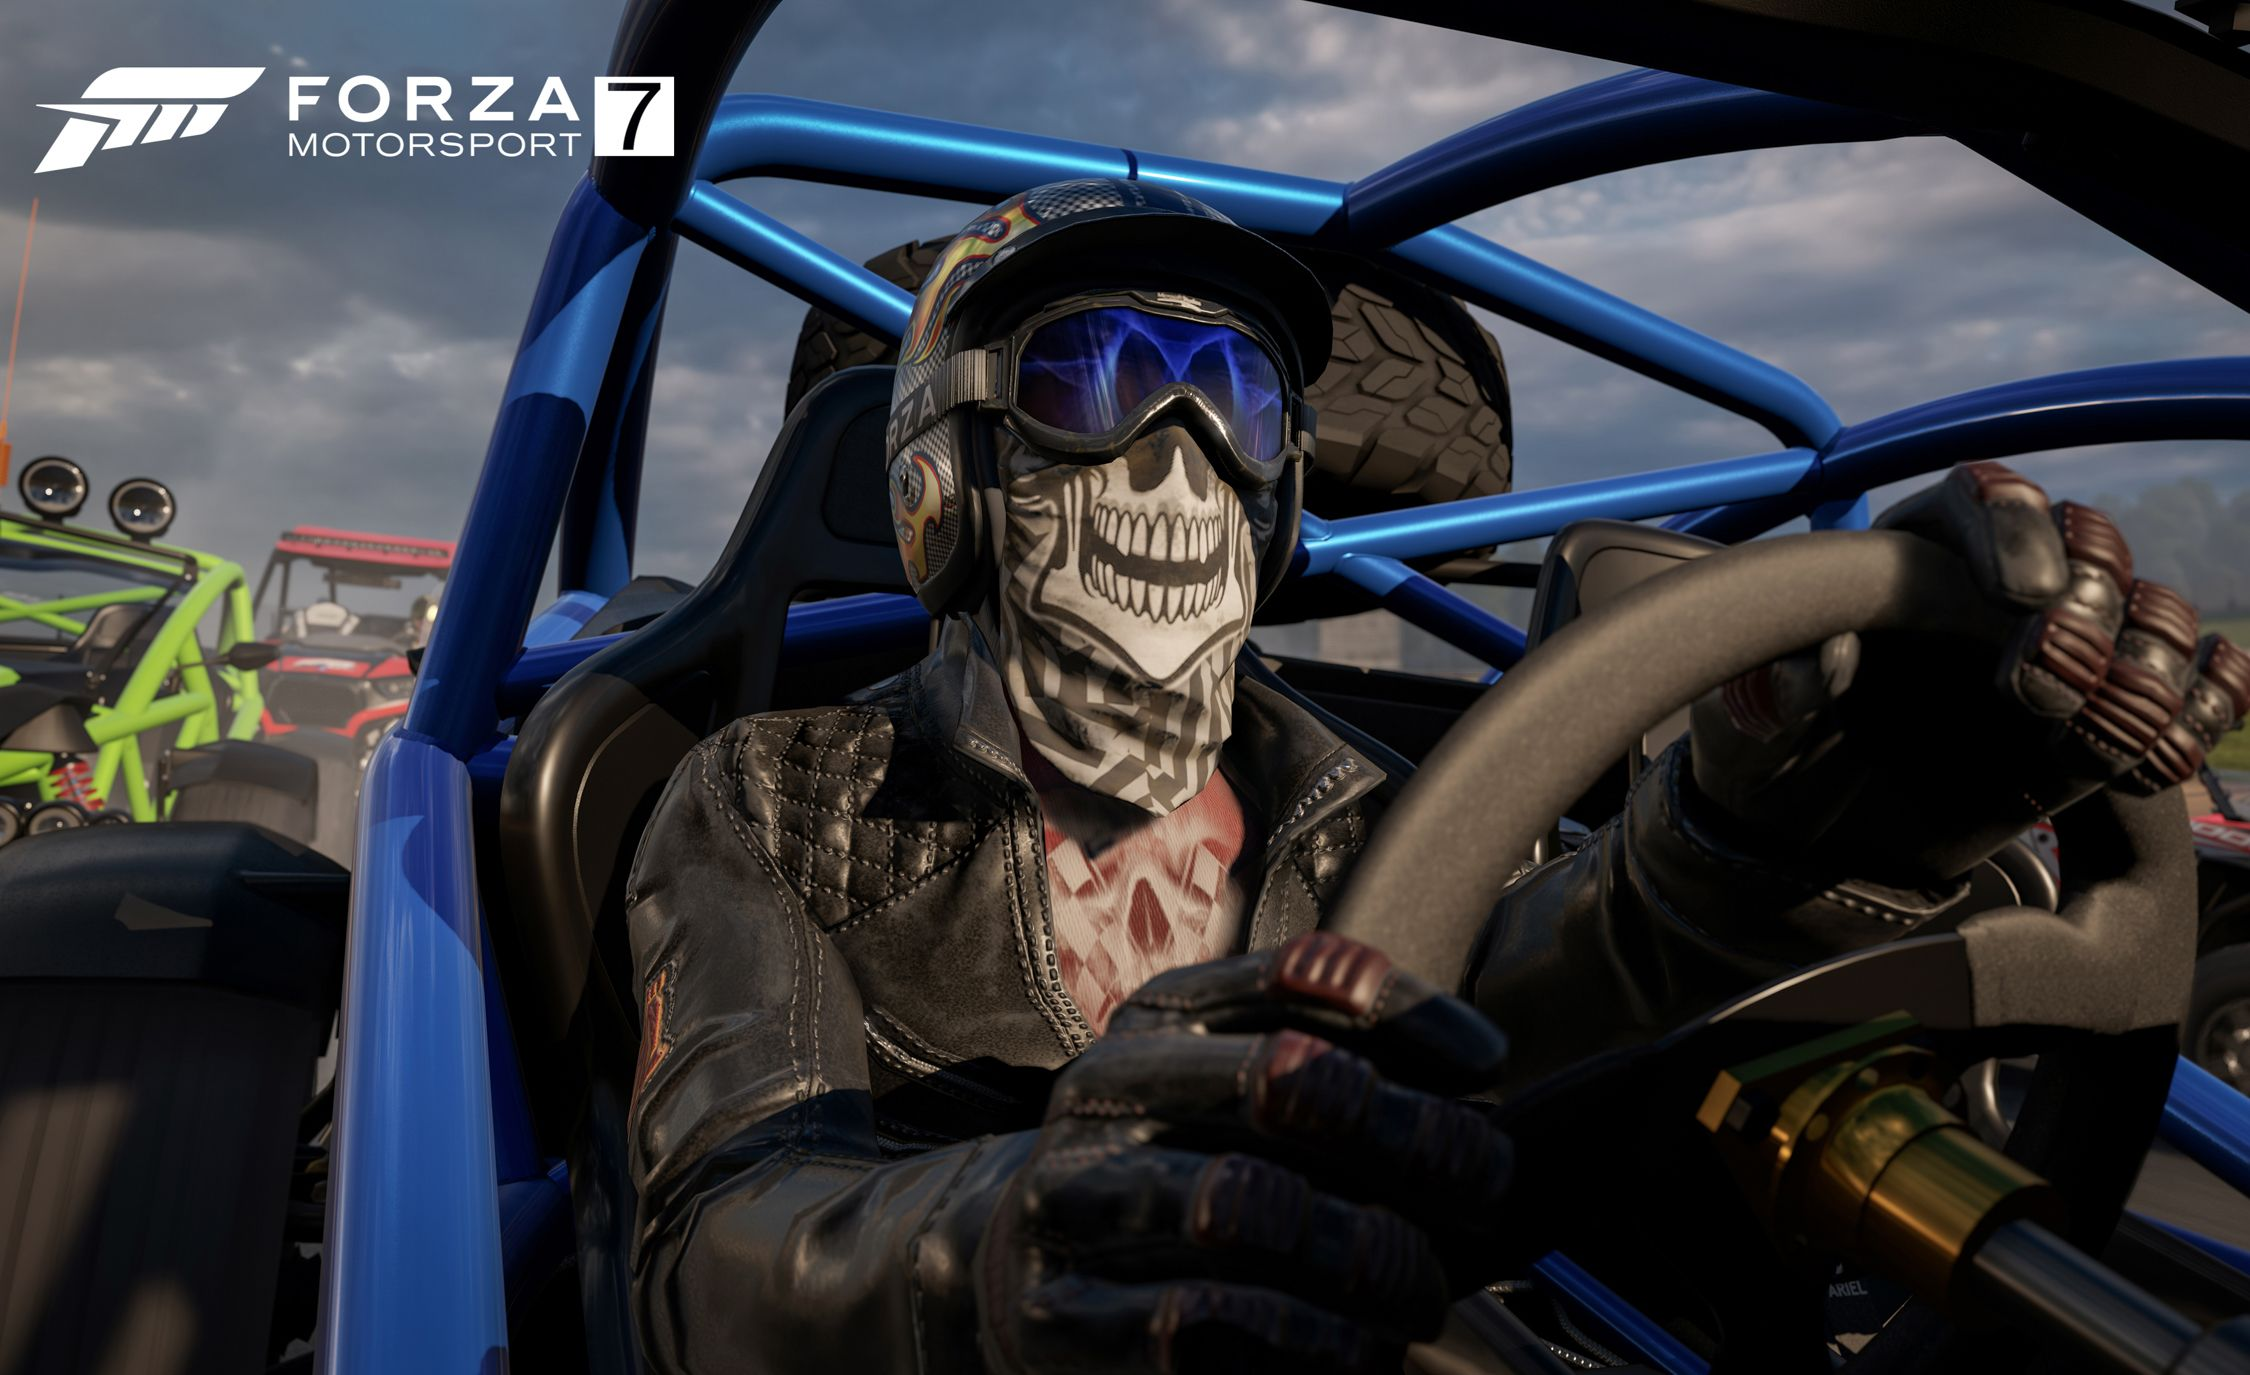 b49ac0e415e Forza Motorsport 7 Review: The Best Installment Yet | News | Car and ...